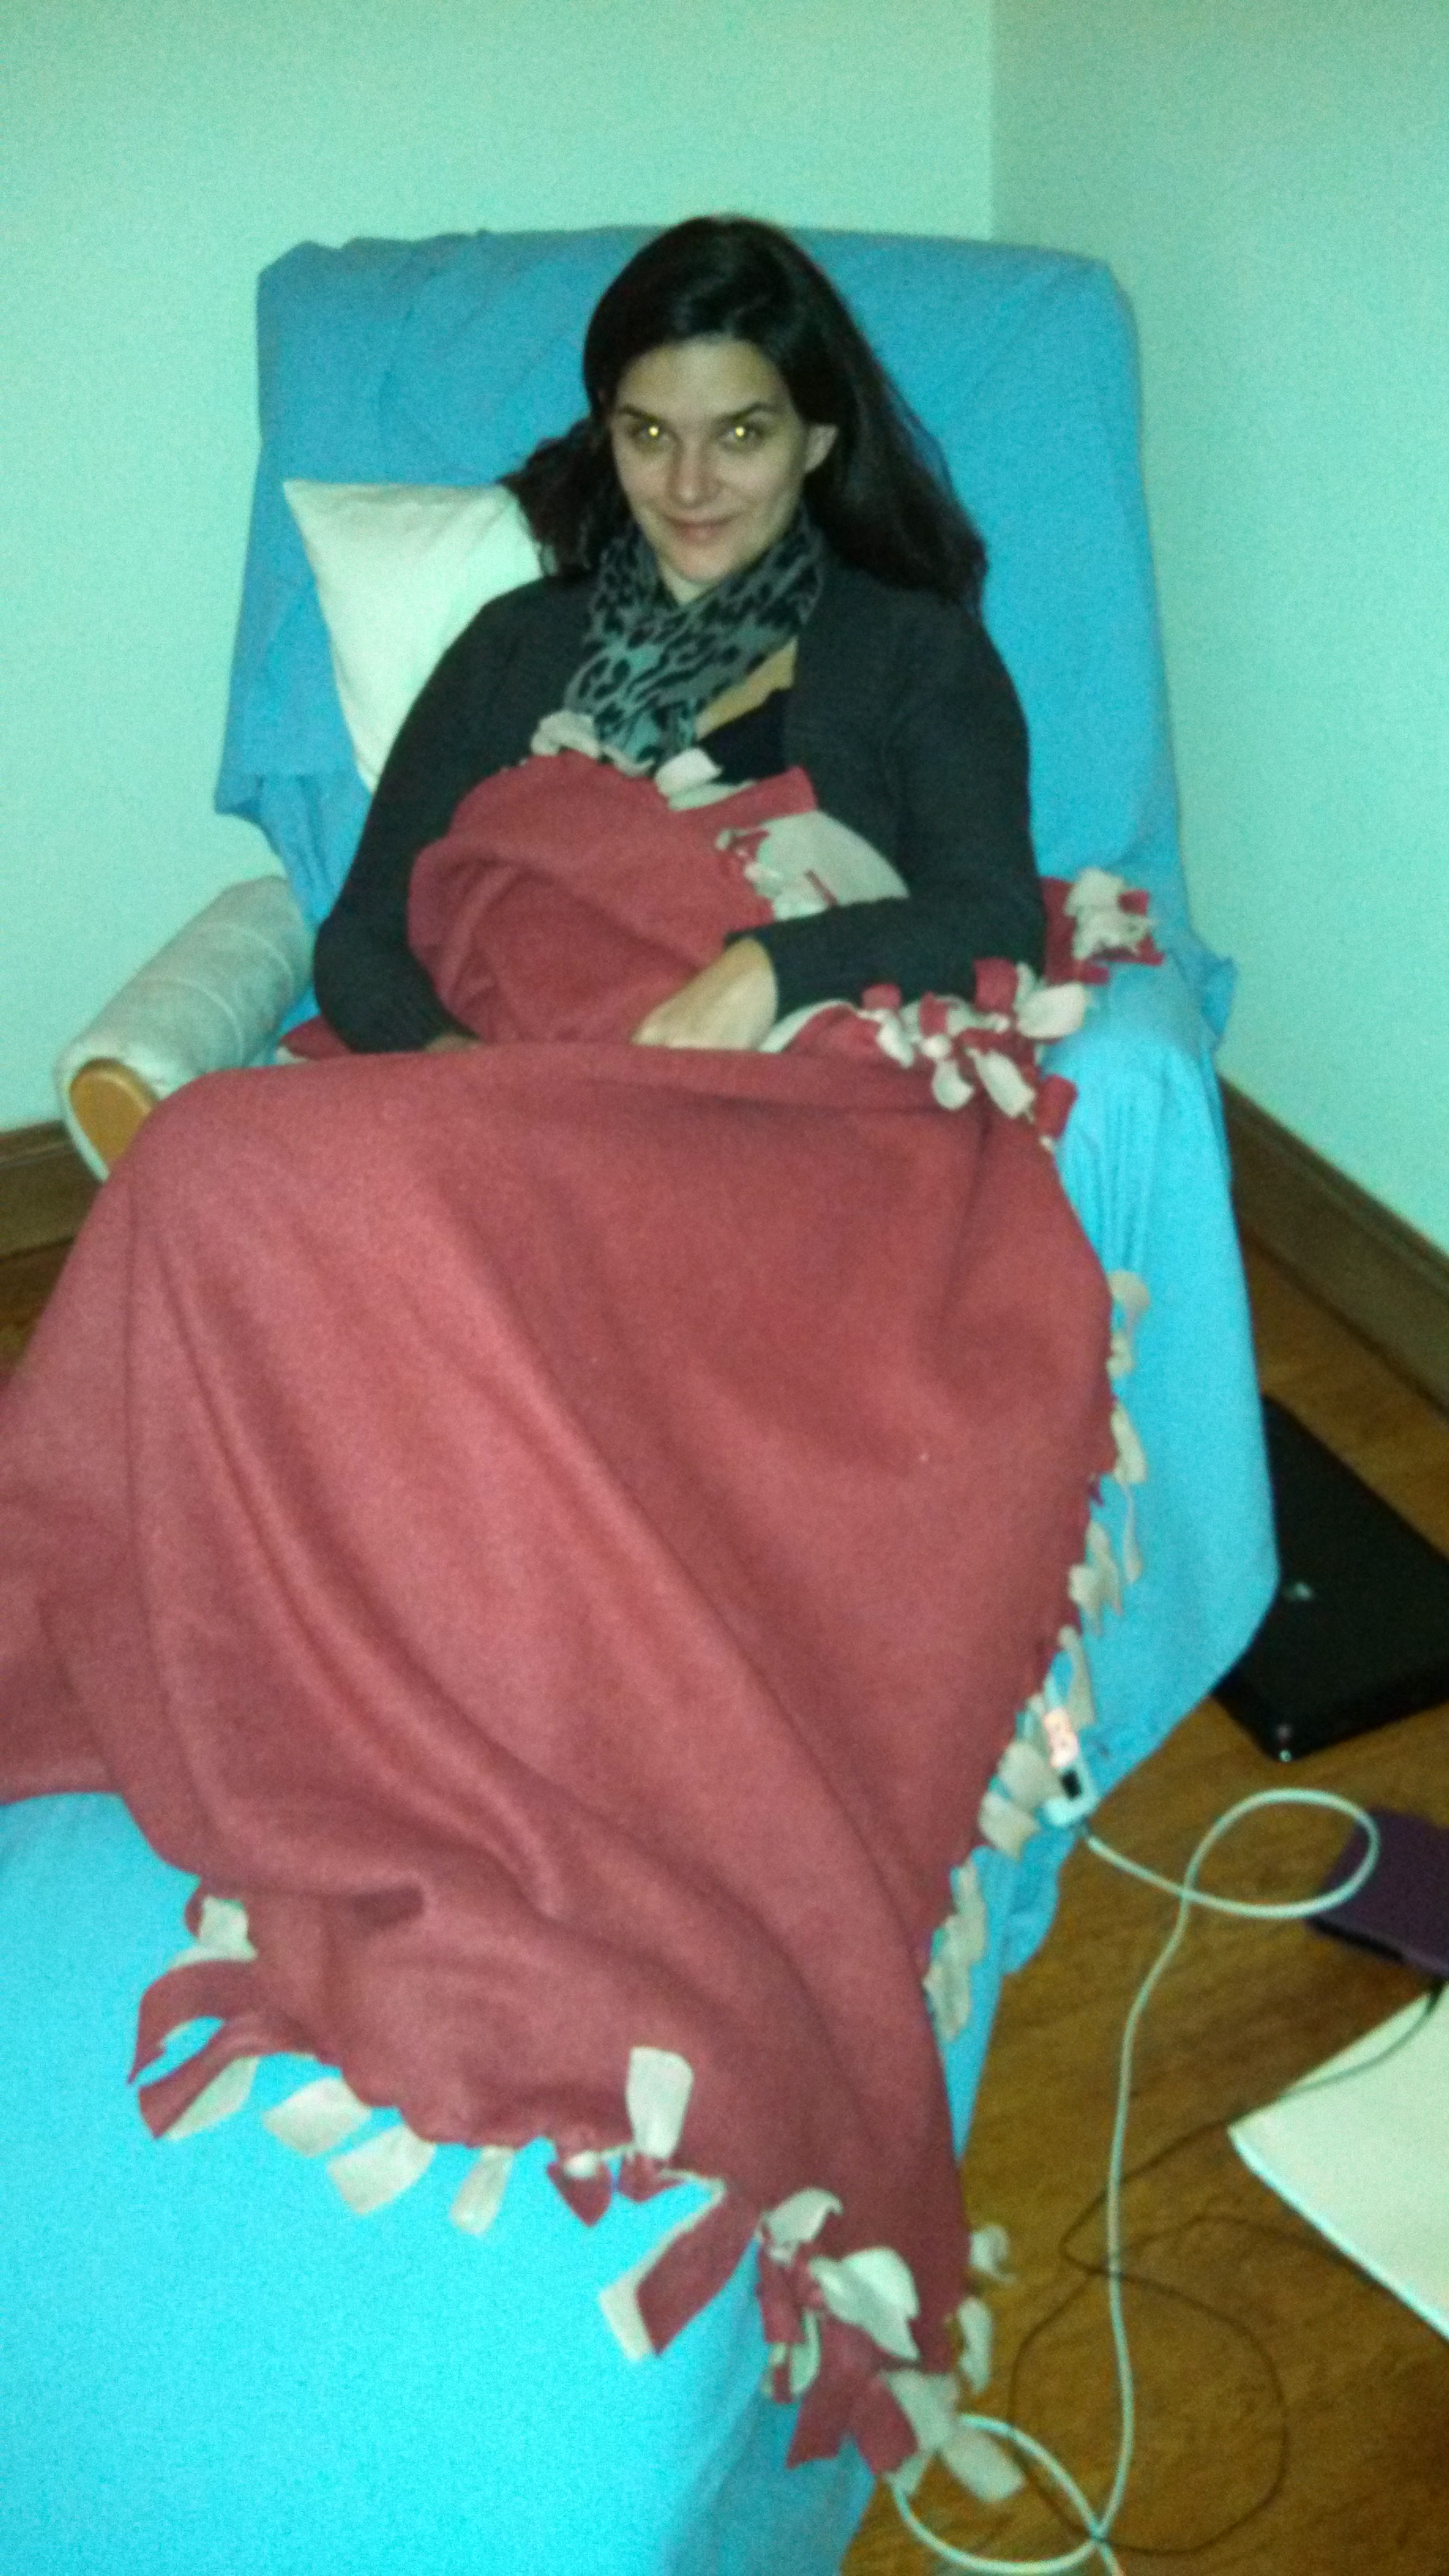 This is me recovering after my second excision surgery with Dr. Tamer Seckin. Note the recliner and the heating pad chord.